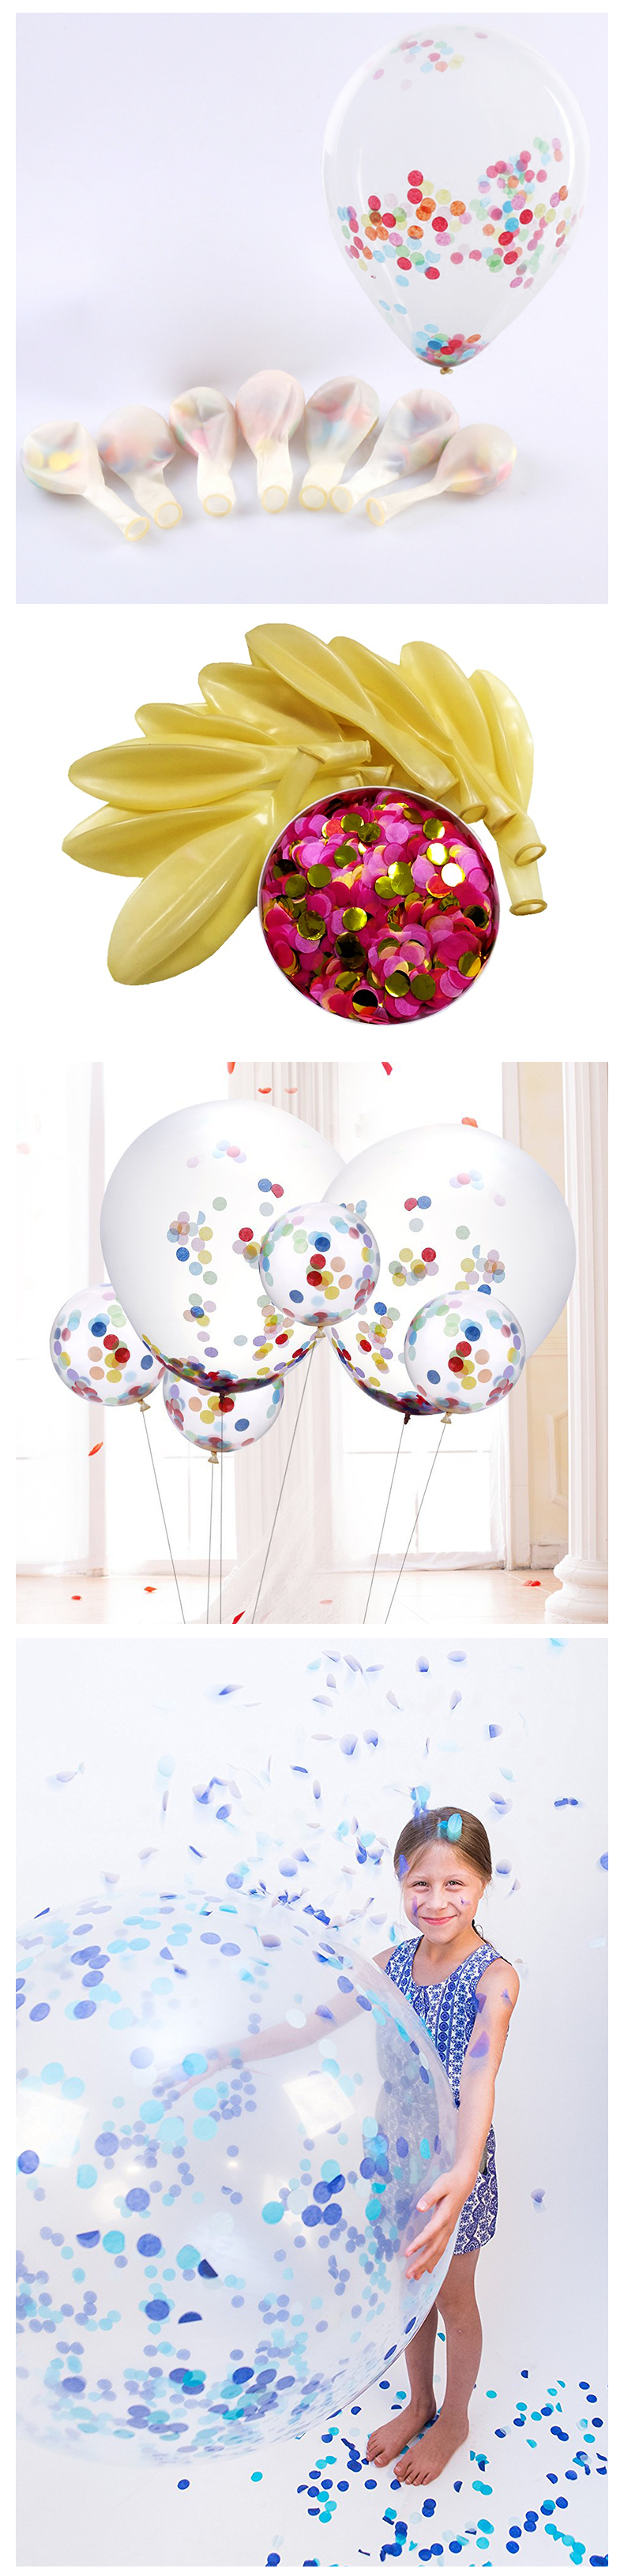 2018 hot sale cheap price  clear latex free metallic confetti balloon for wedding party event